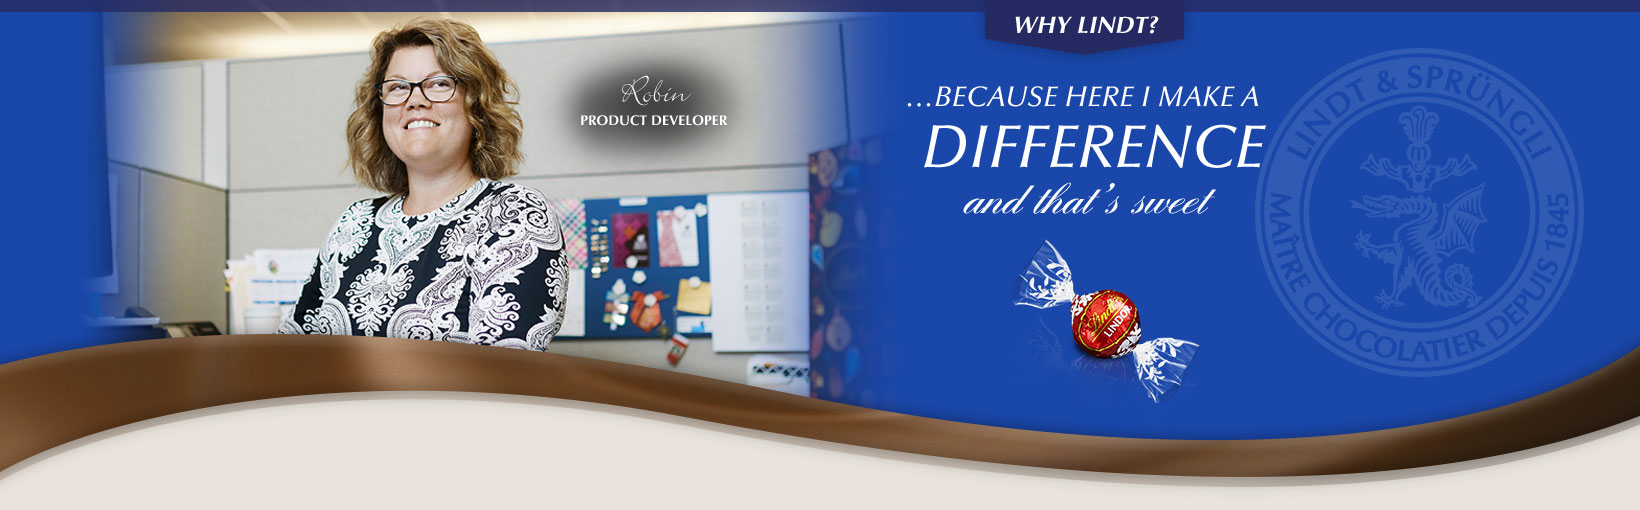 Why Lindt? …Because here I make a difference and that's sweet. Robin , Product Developer